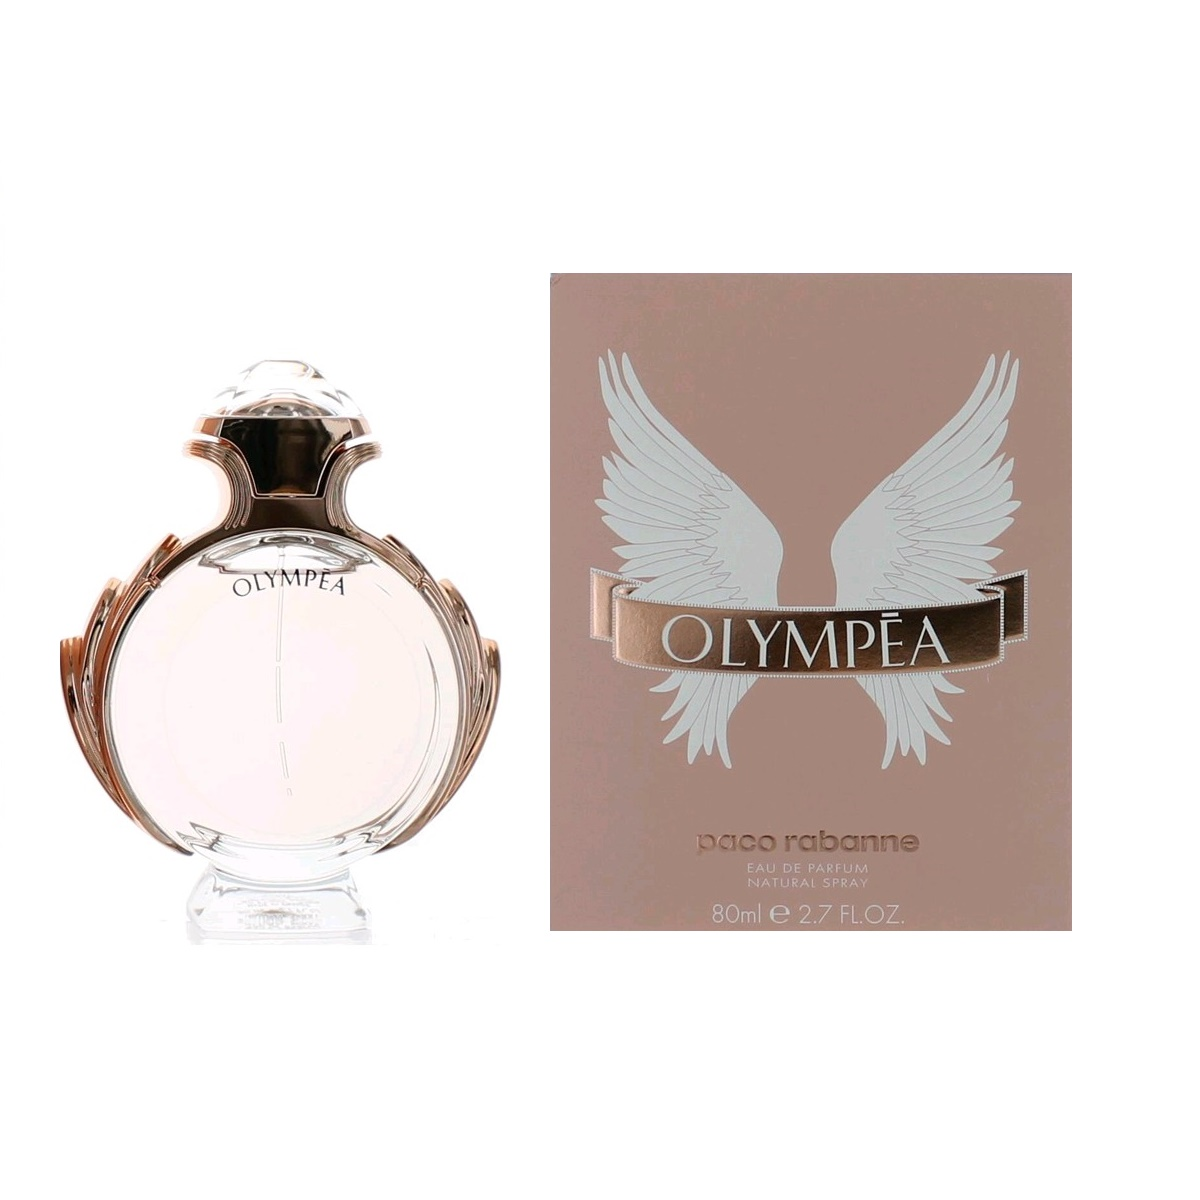 Paco Rabanne Olympea Eau de Parfum Spray 2.7oz 80ml